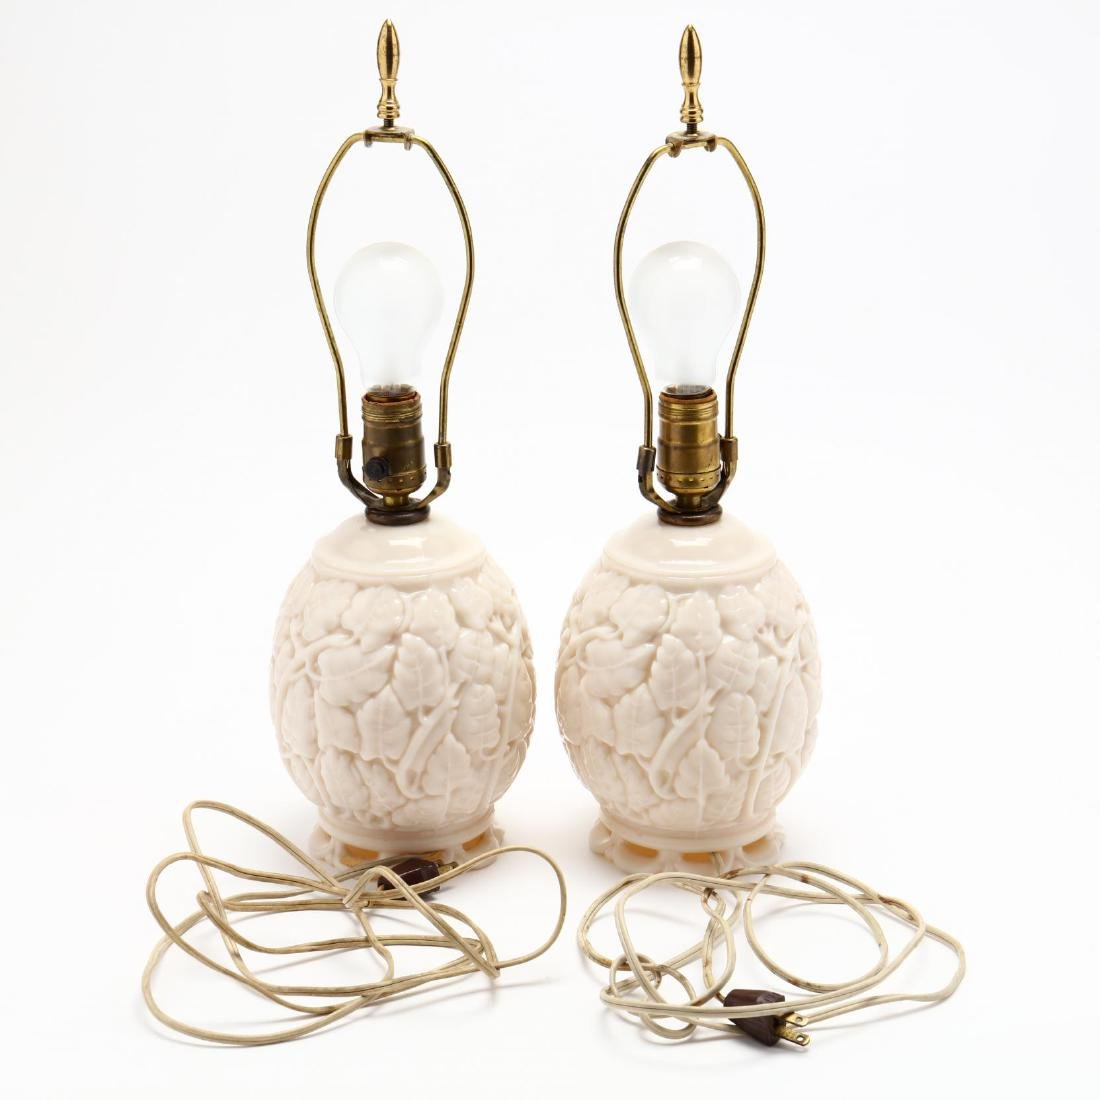 Pair of Art Deco Consolidated Glass Table Lamps - 4